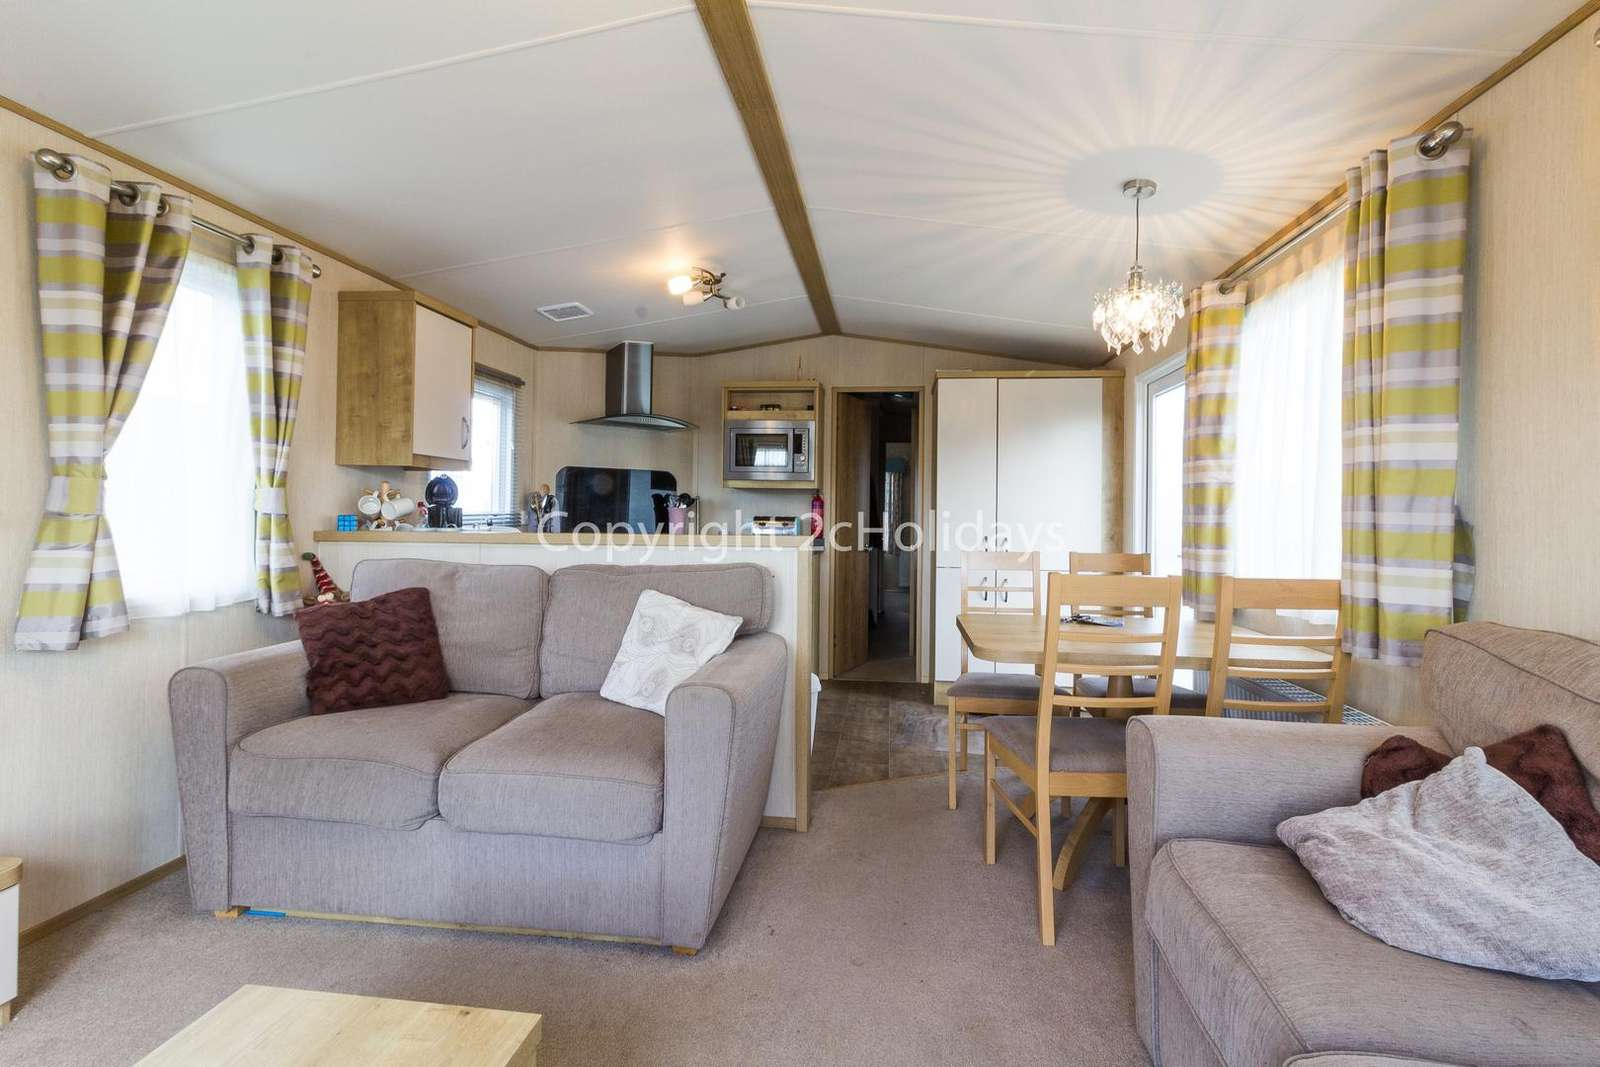 Open plan lounge, kitchen and dining area, ideal for families